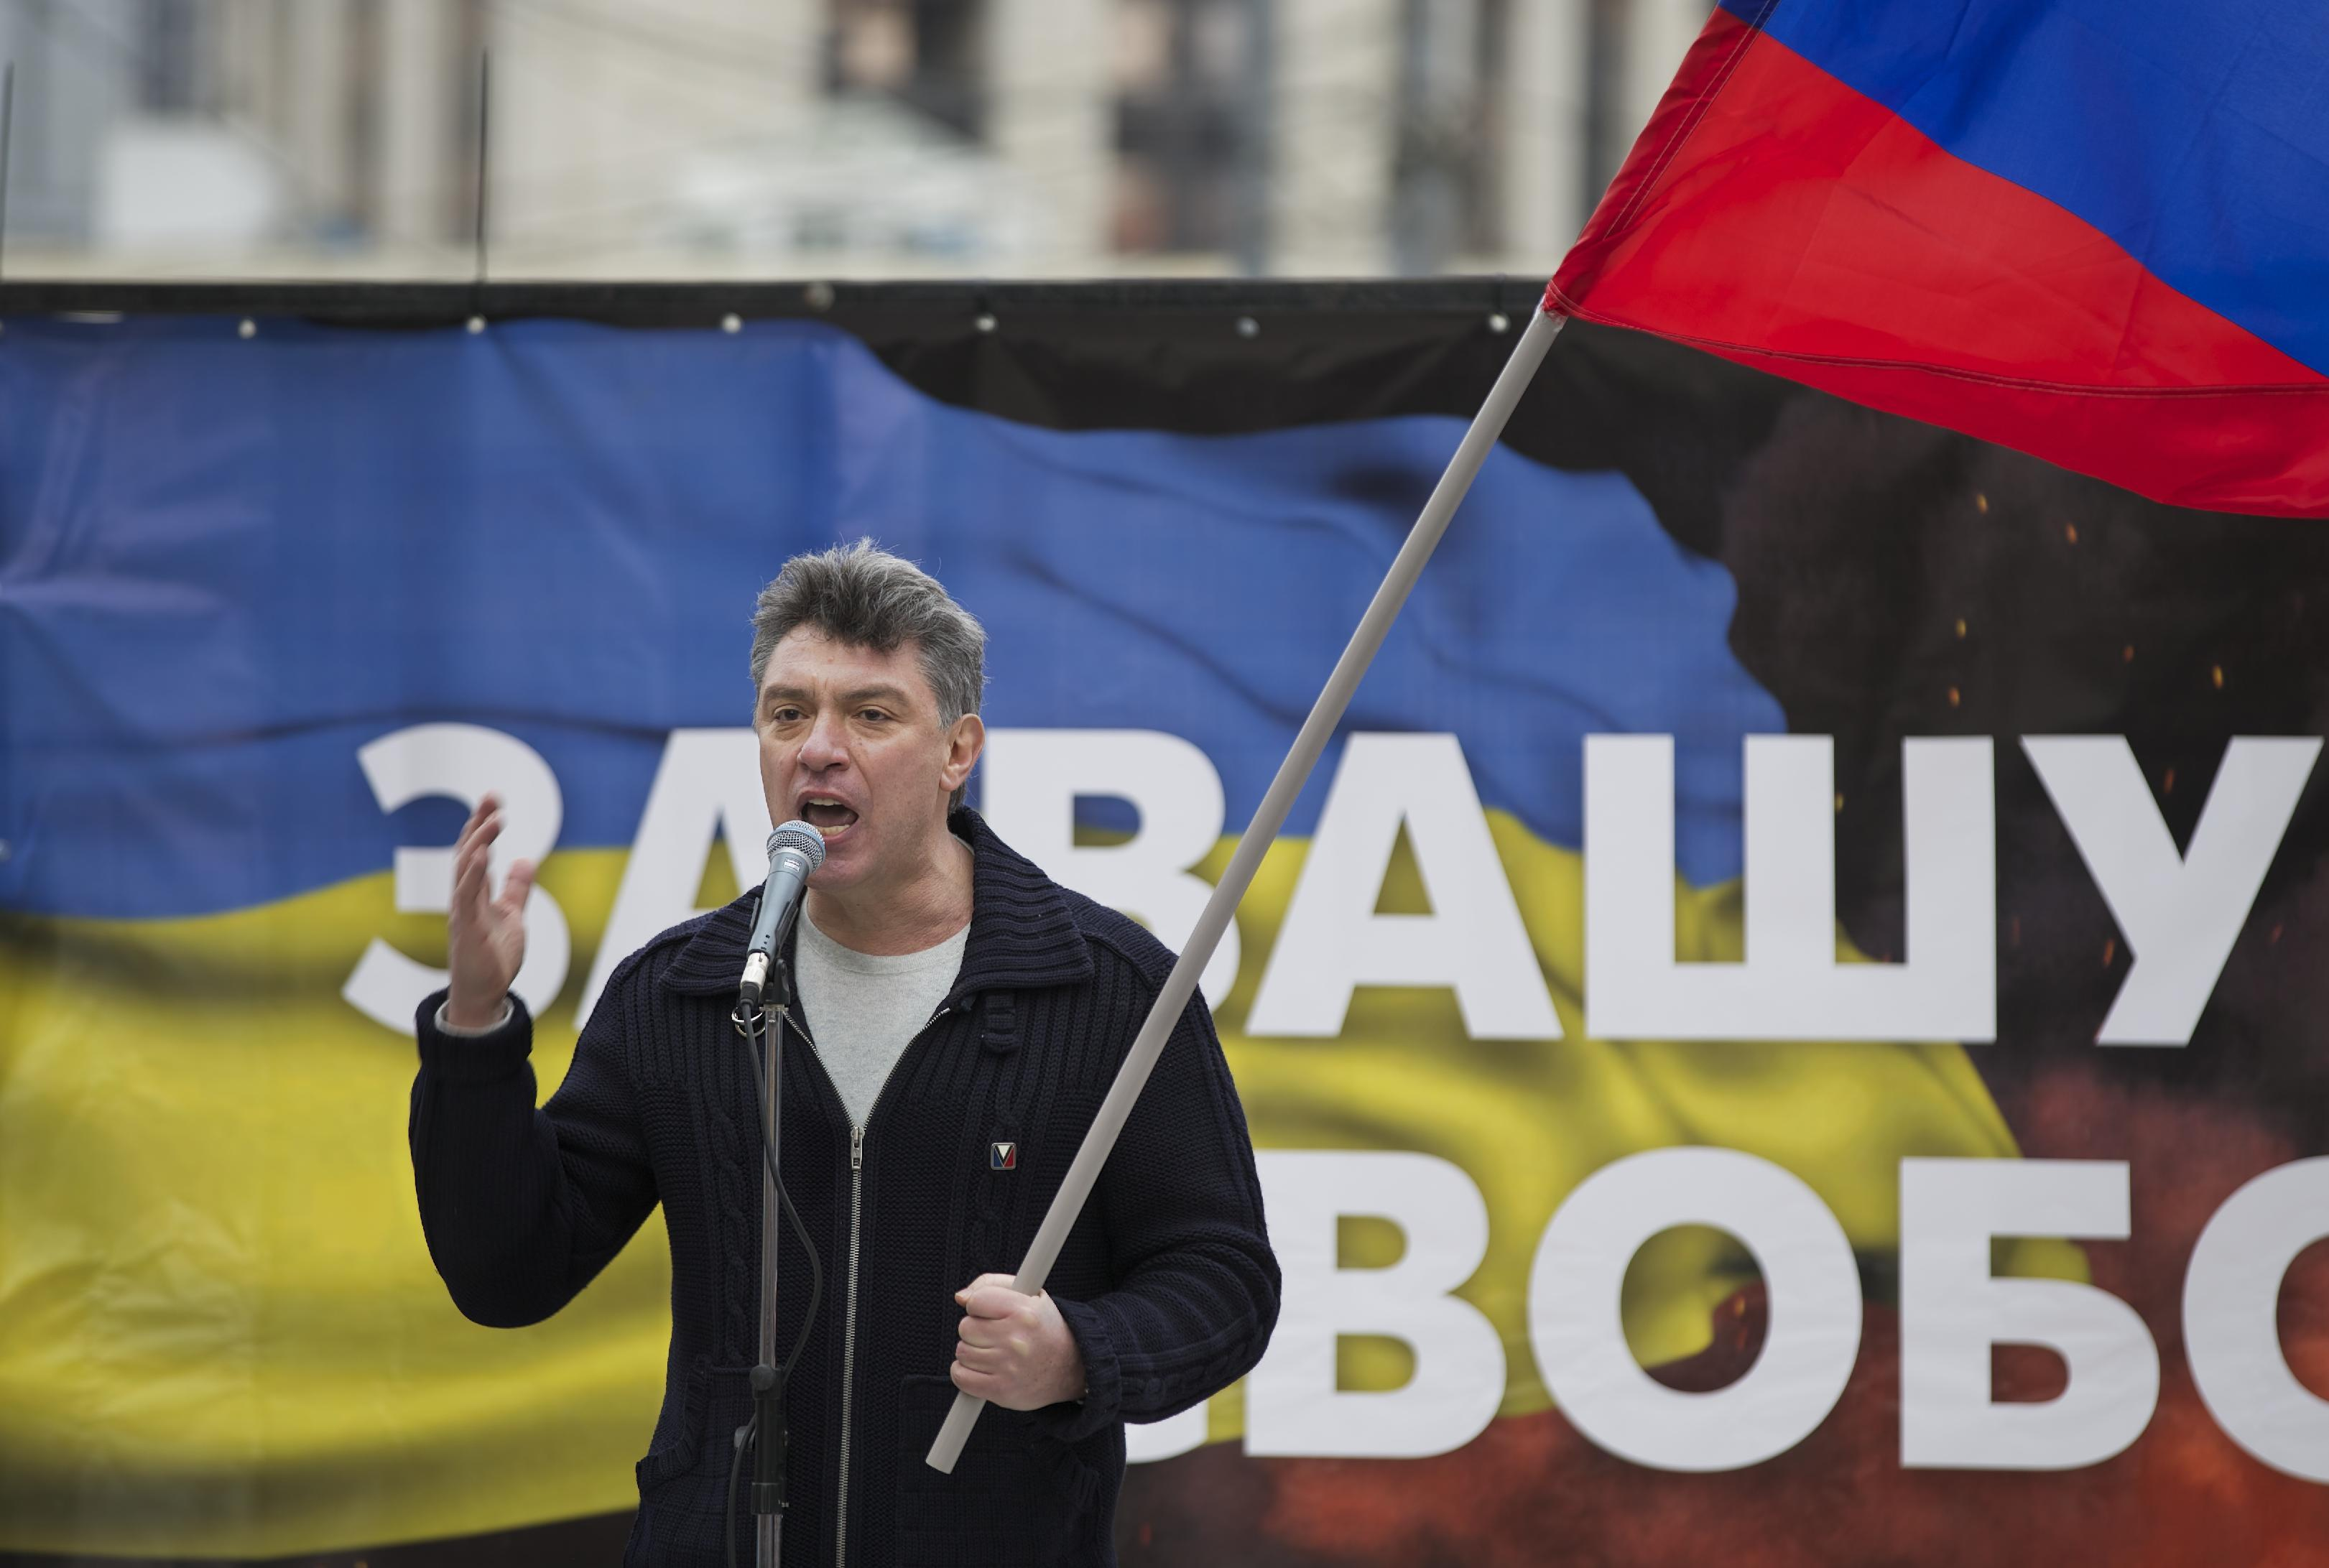 Boris Nemtsov, a Putin critic, gunned down in Moscow